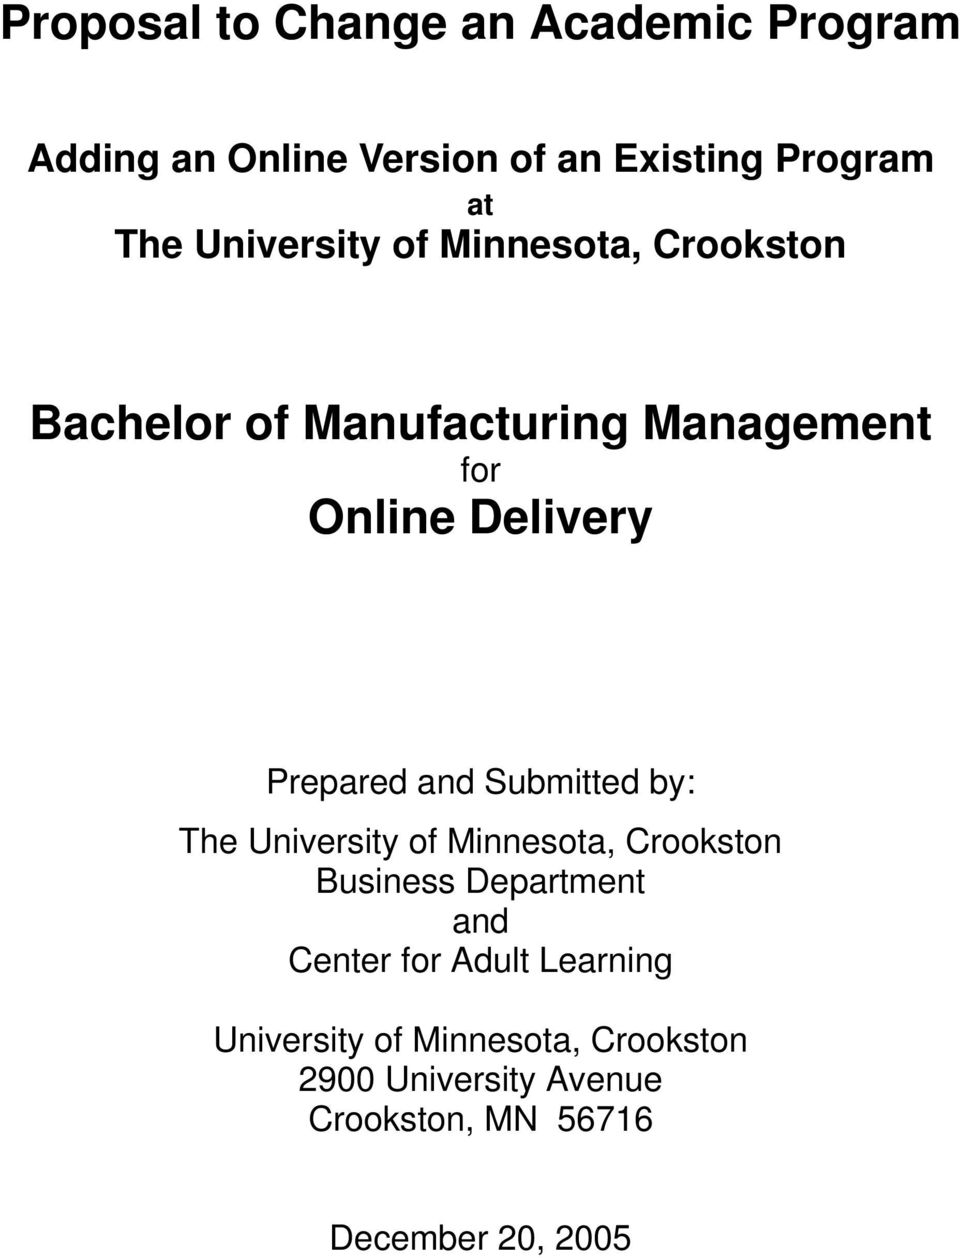 Prepared and Submitted by: The University of Minnesota, Crookston Business Department and Center